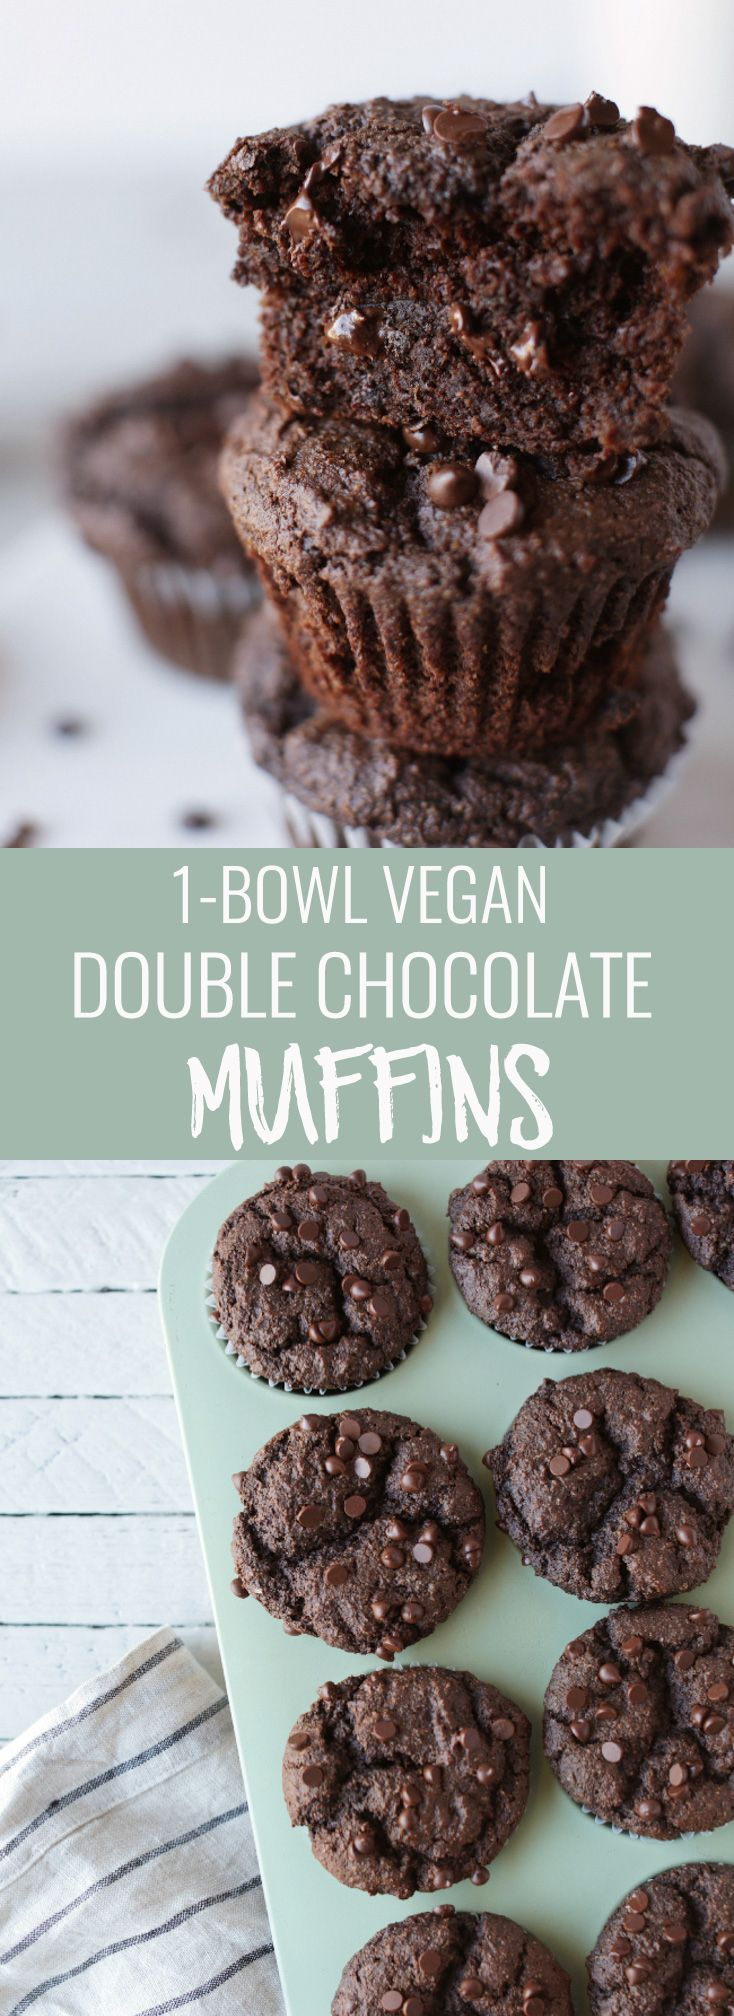 1-bowl vegan double chocolate muffins. Naturally sweetened, perfectly moist, chocolatey and they come together in 30-minutes! Nutritionalfoodie.com